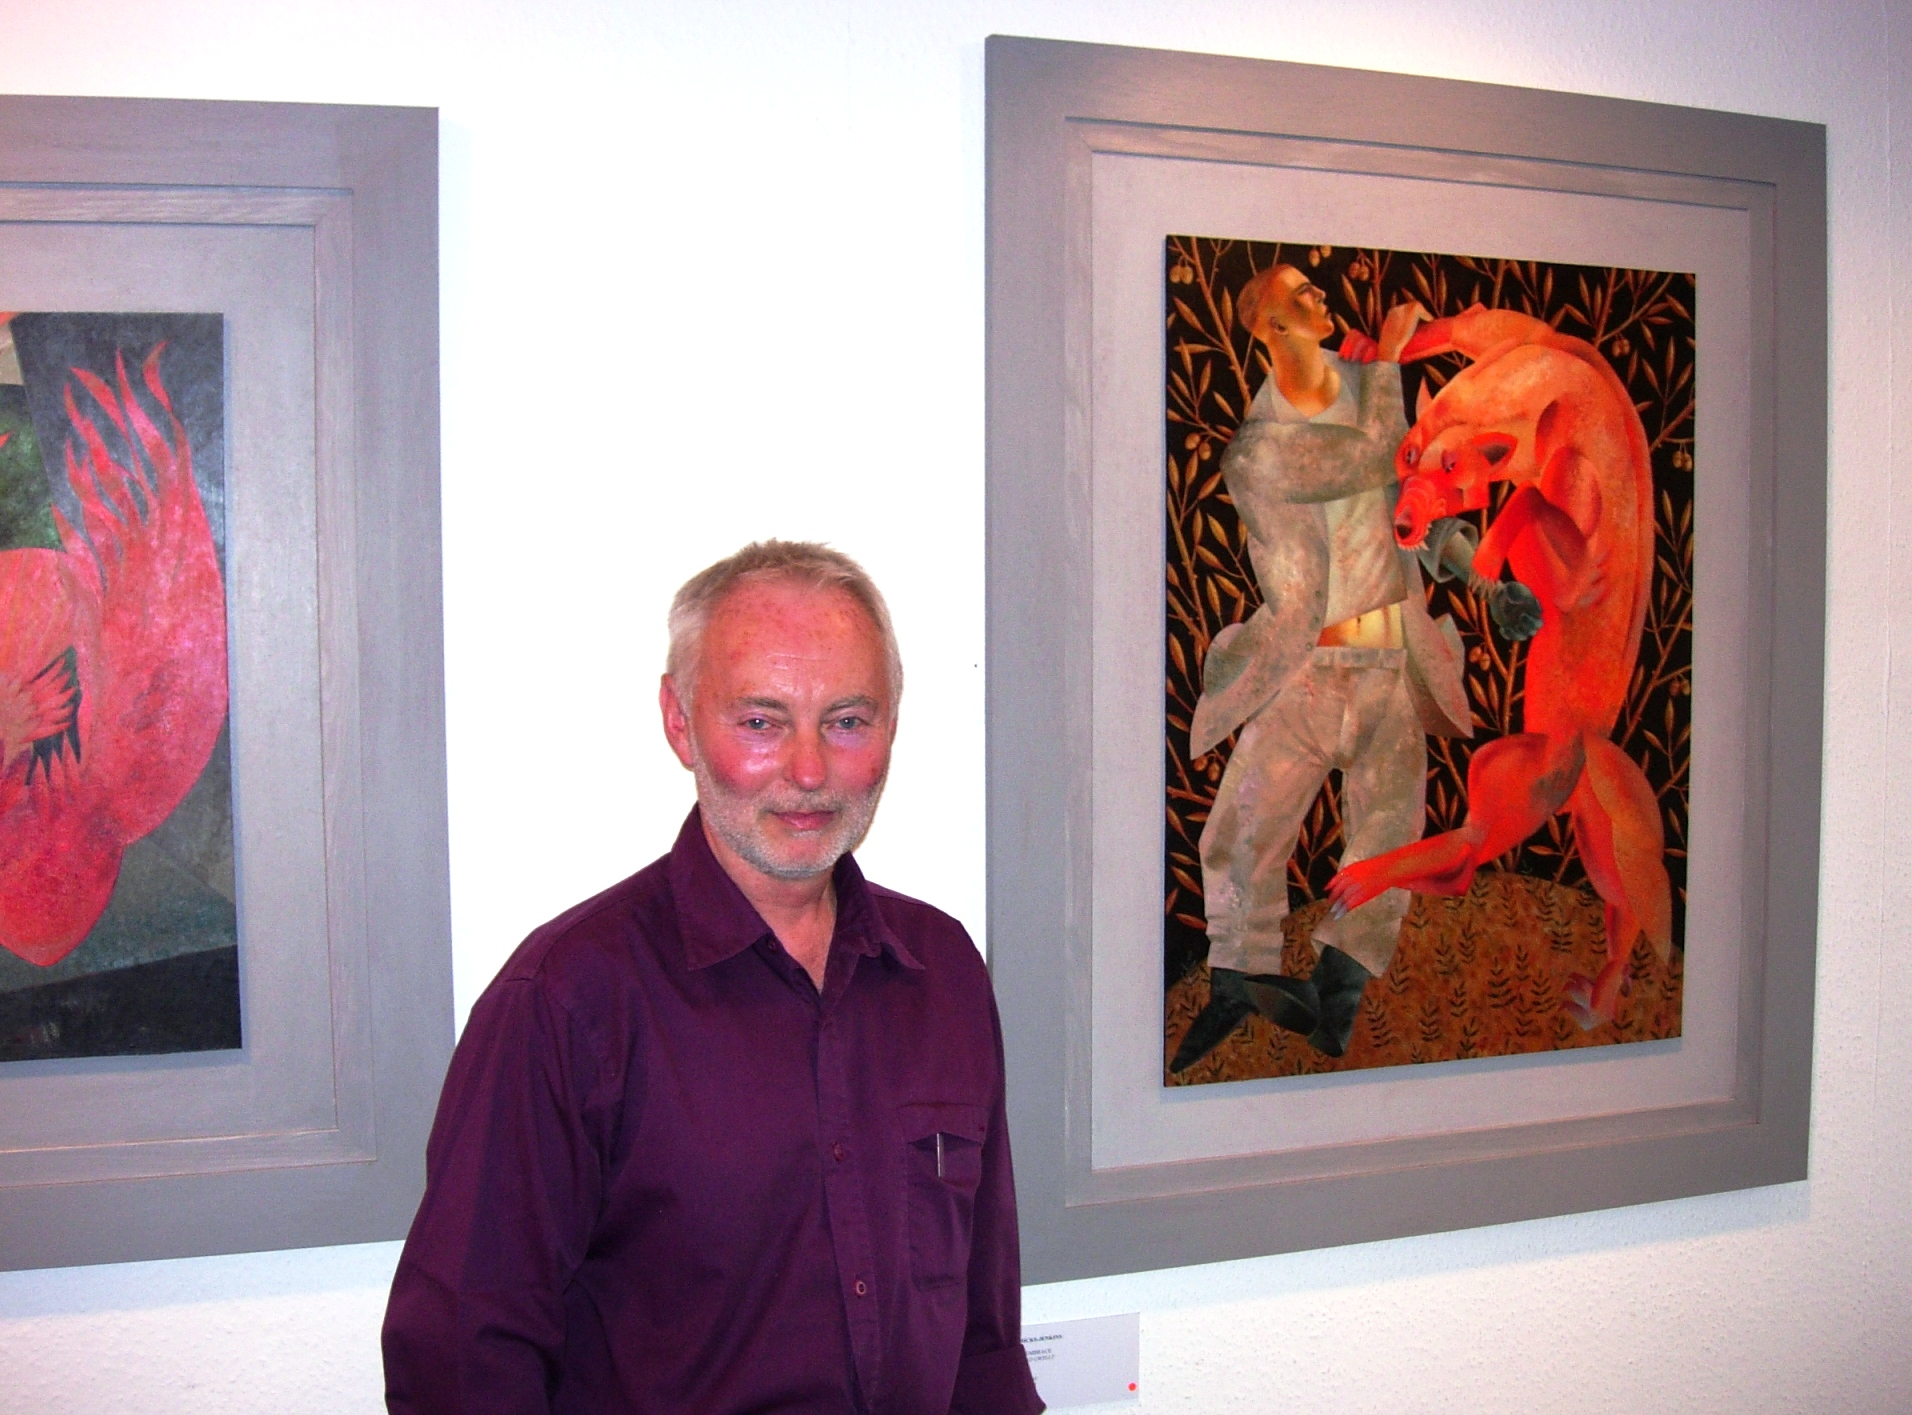 Clive Hicks-Jenkins with his paintings, Machynlleth, 31 August 2007